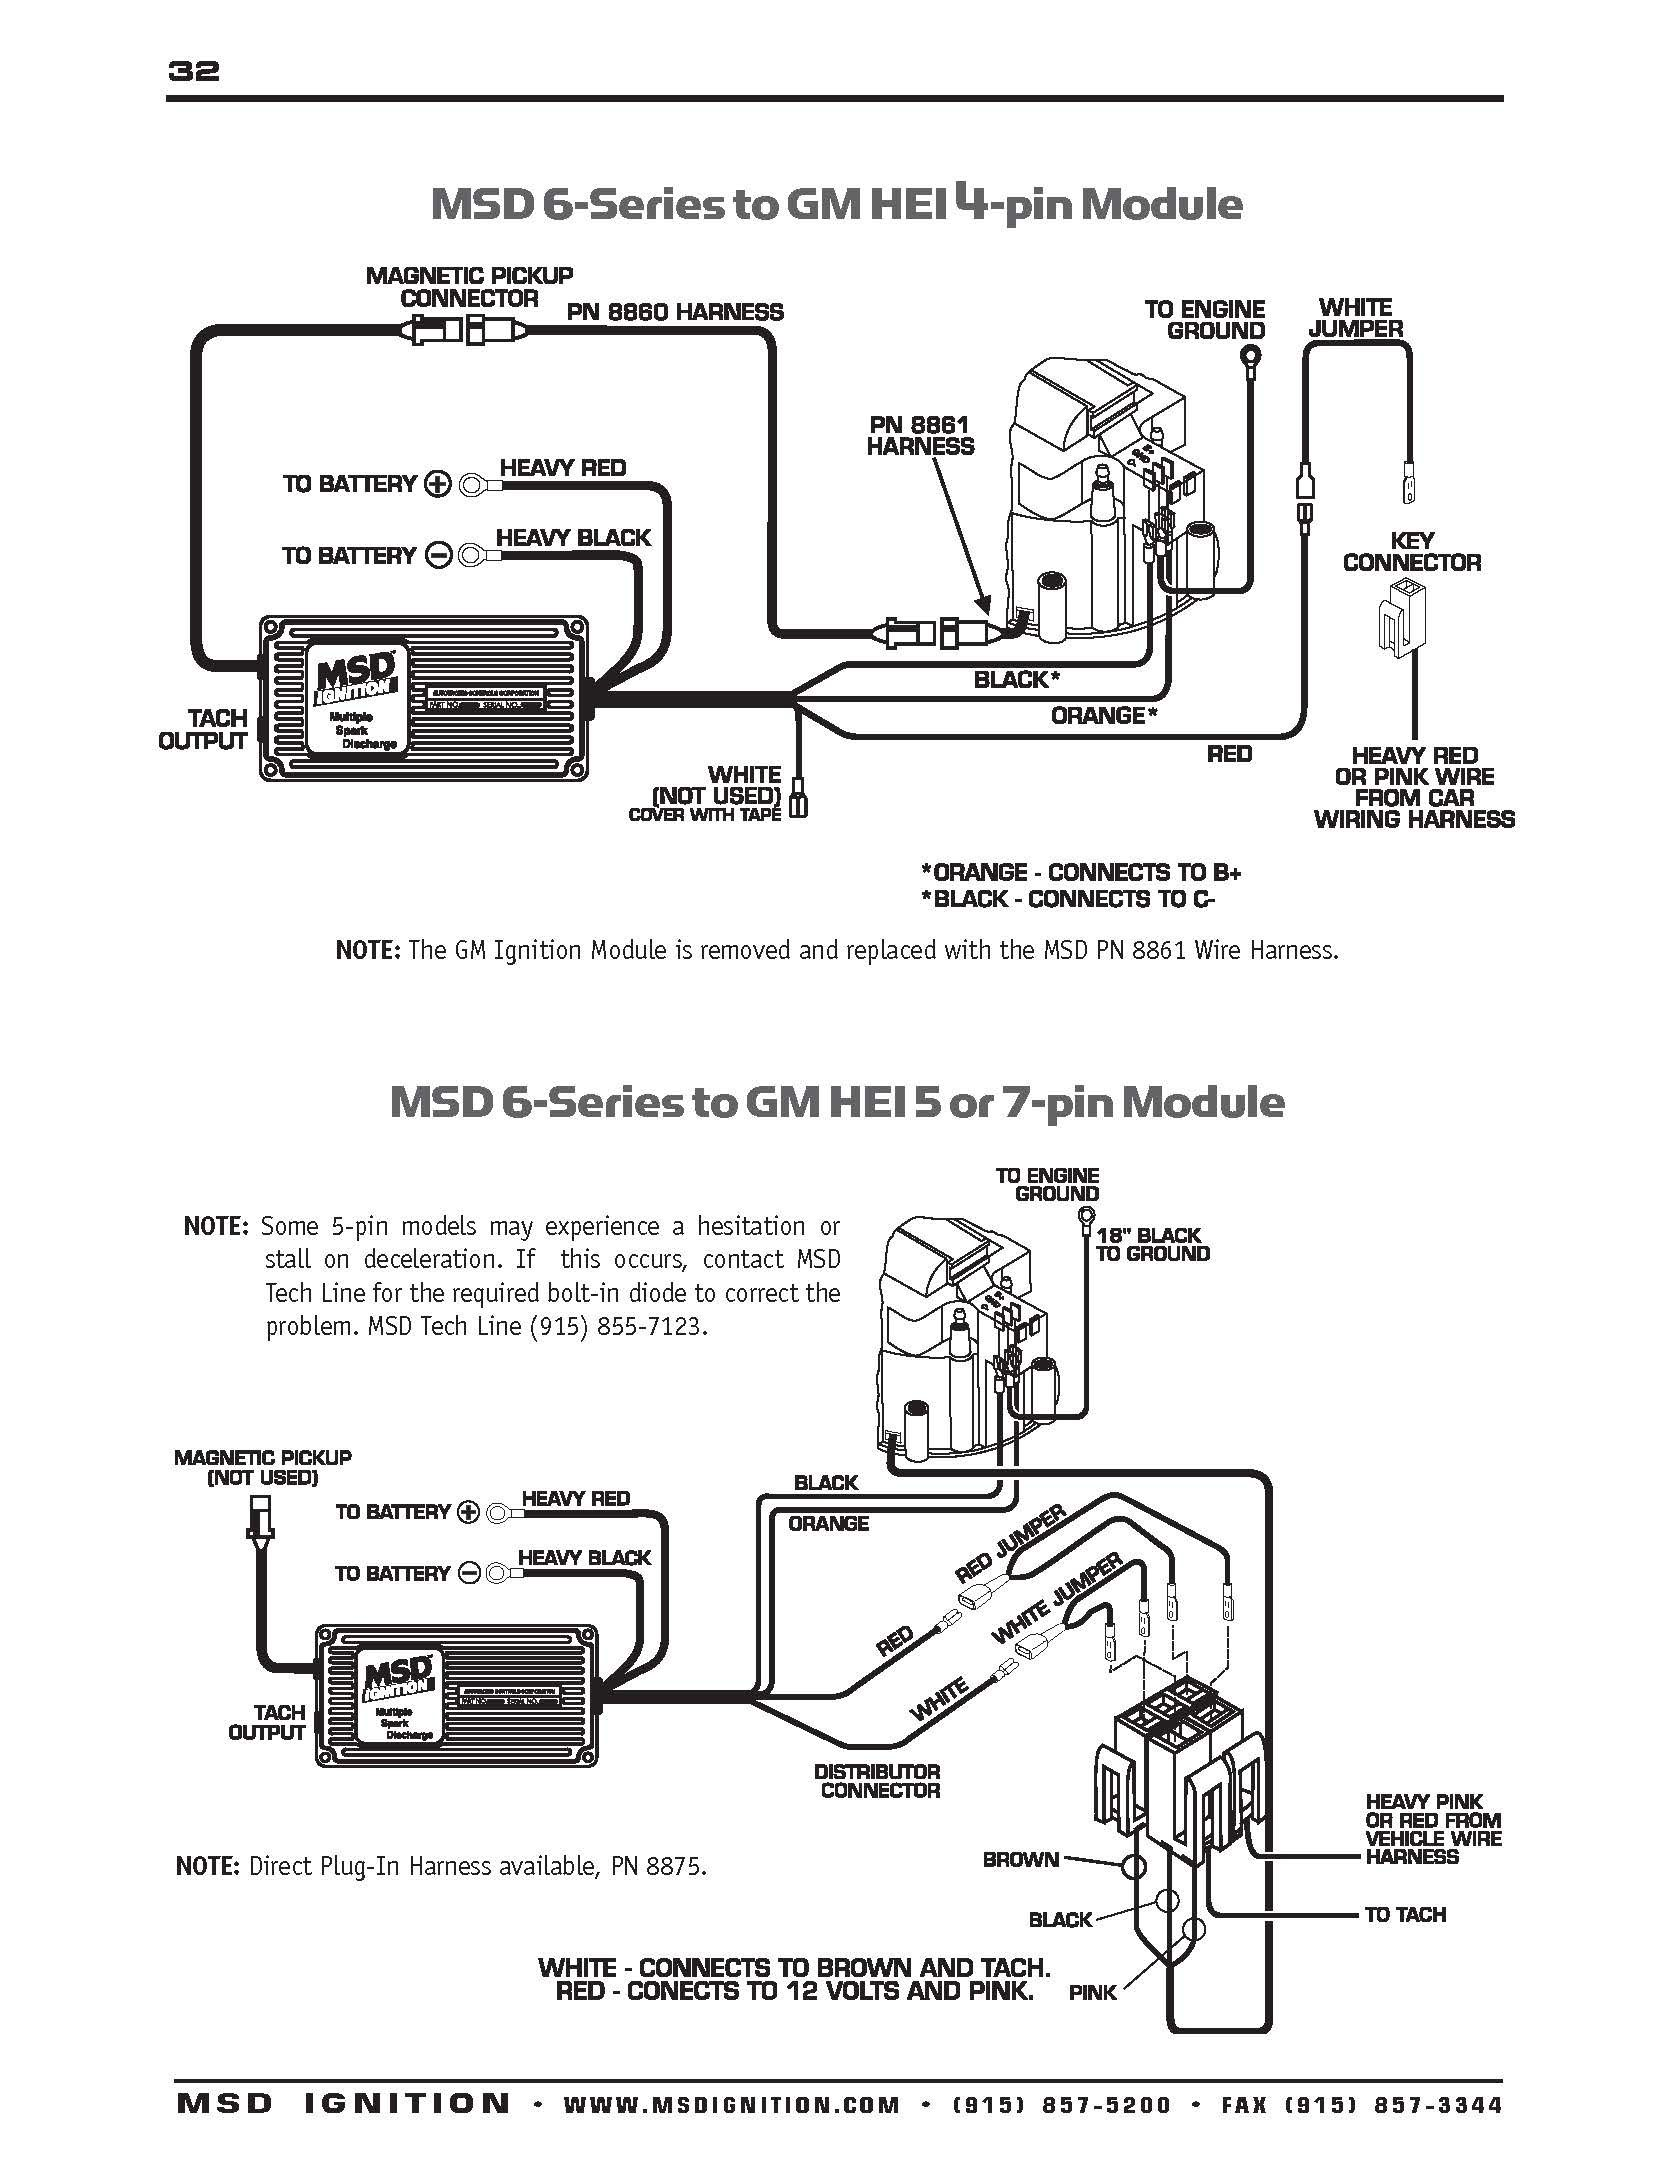 a8a9c5dd0854d22e6aad6bb5dda79a11 msd ignition wiring diagrams 1966 chevelle pinterest engine s&s compression release wiring diagram at readyjetset.co